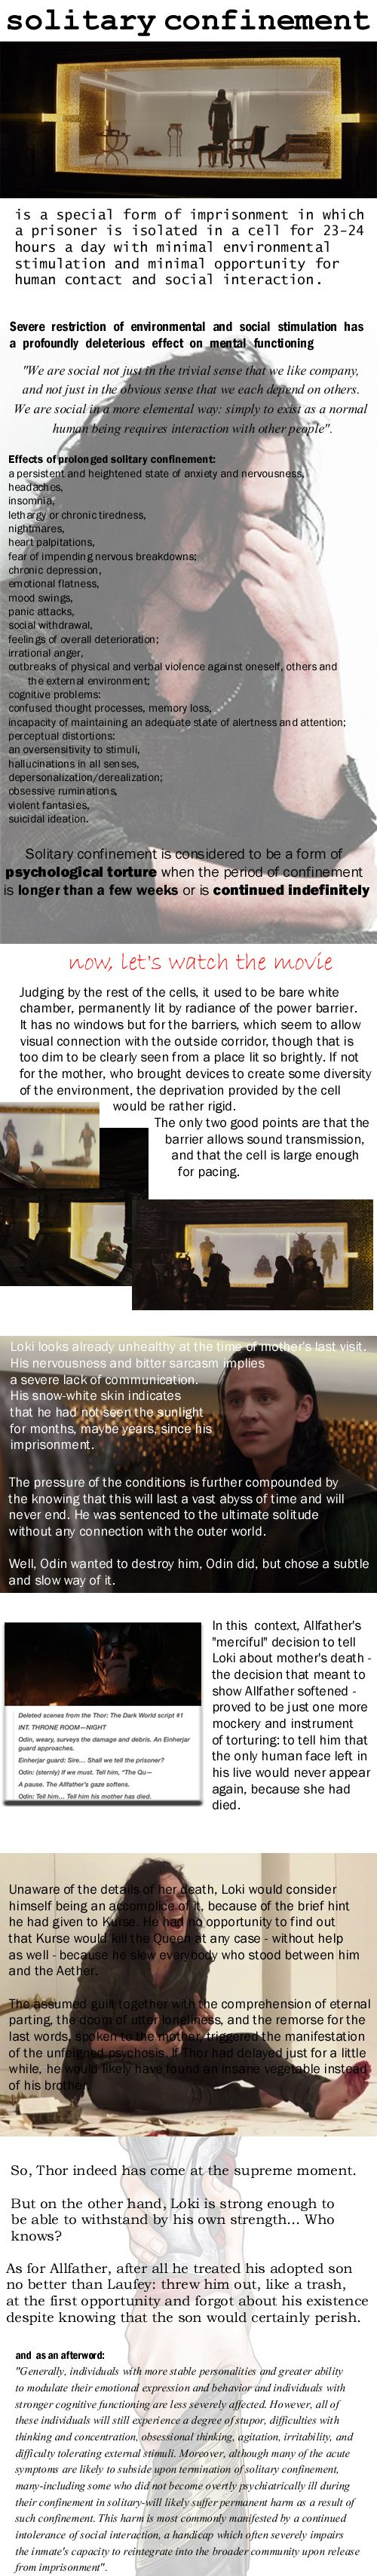 On the imprisonment of Loki and how psychologically damaging Odin's punishment is. - WOW this is some hardcore fangirl analysis. I love it. Prepare for major Loki feels